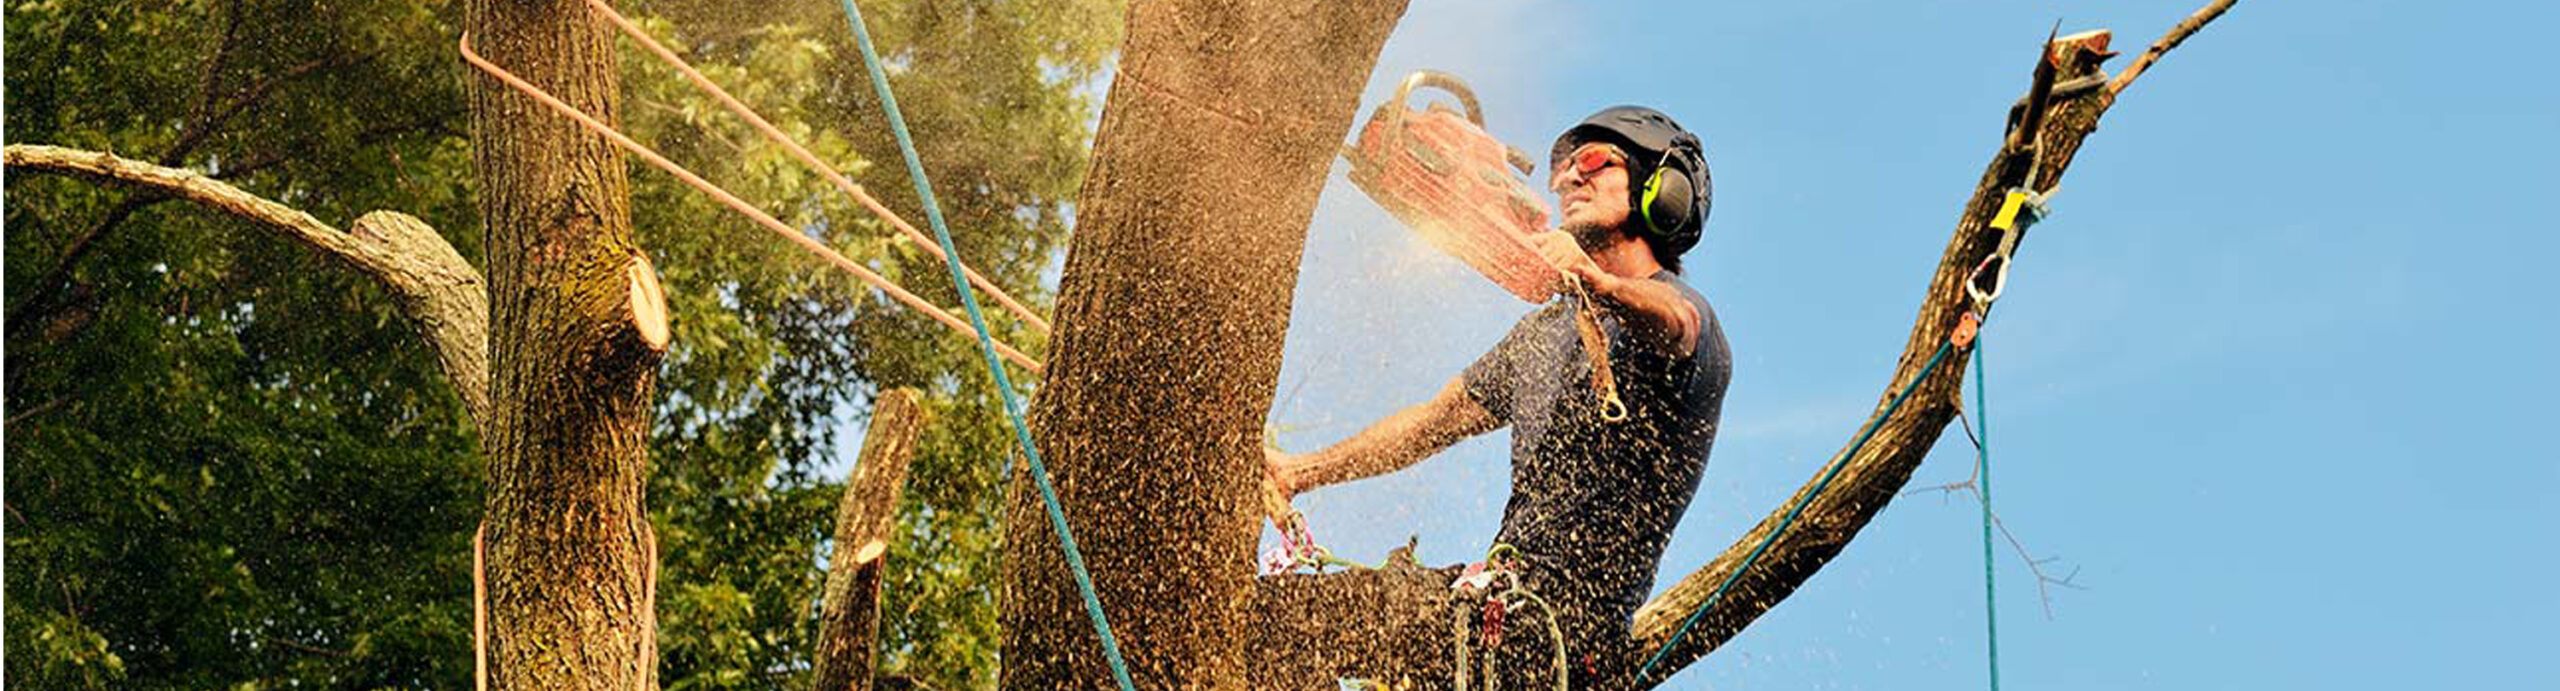 What Does A Tree Service Technician Do?